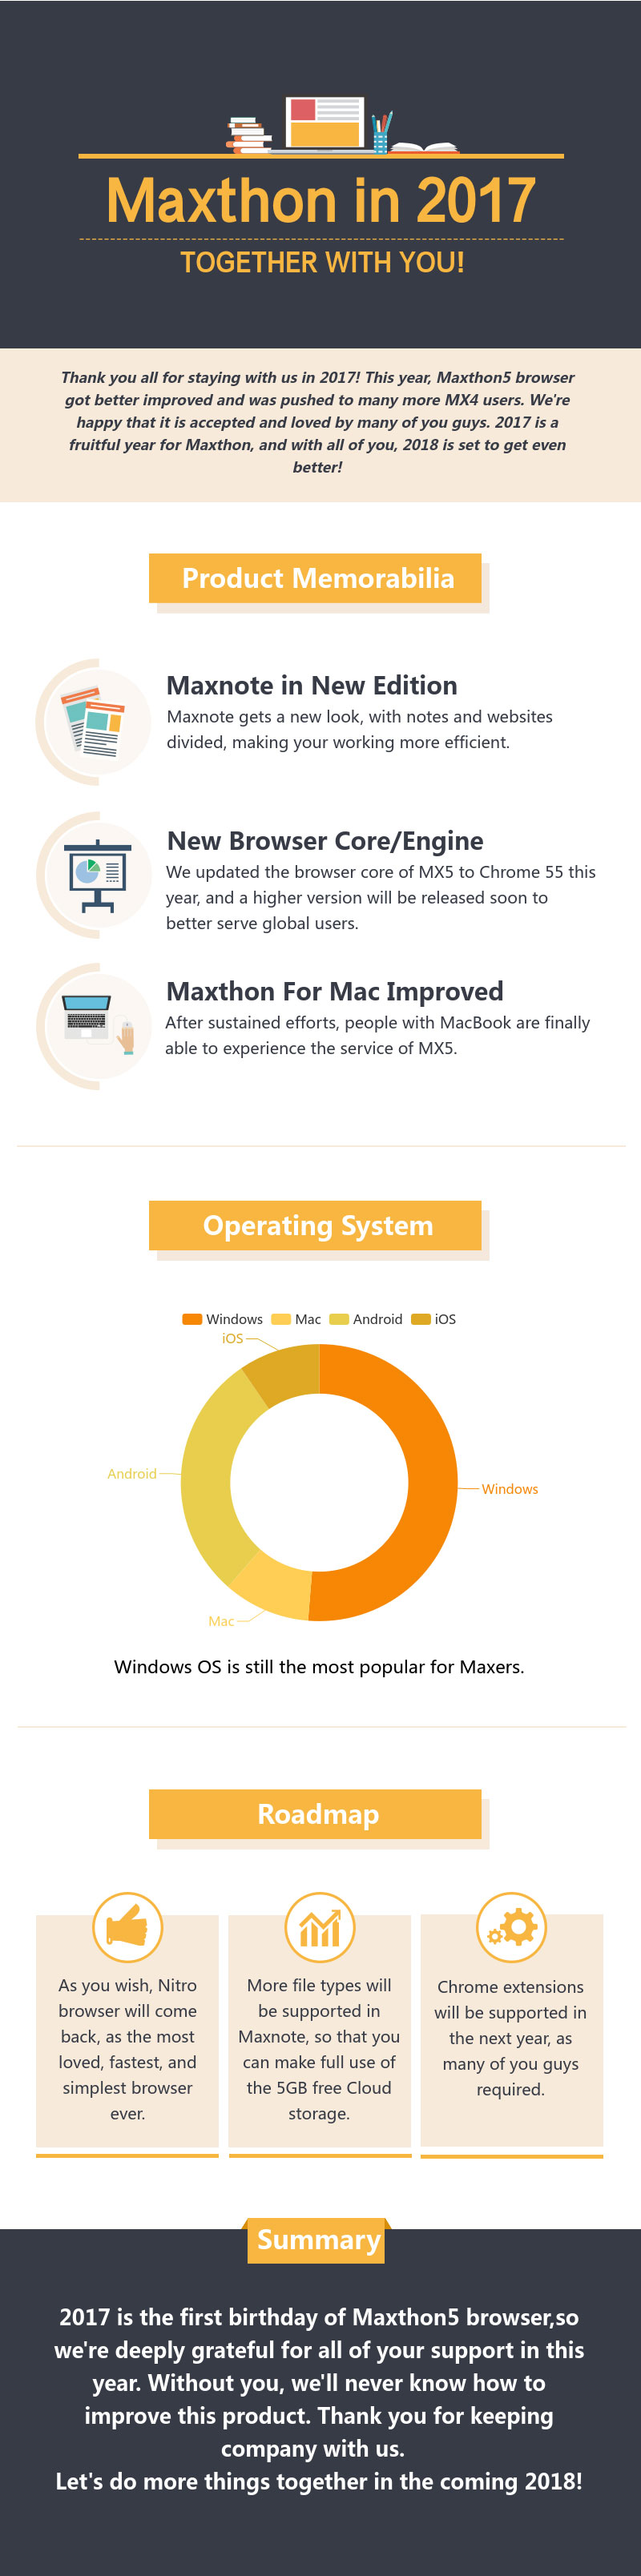 maxthon-in-2017